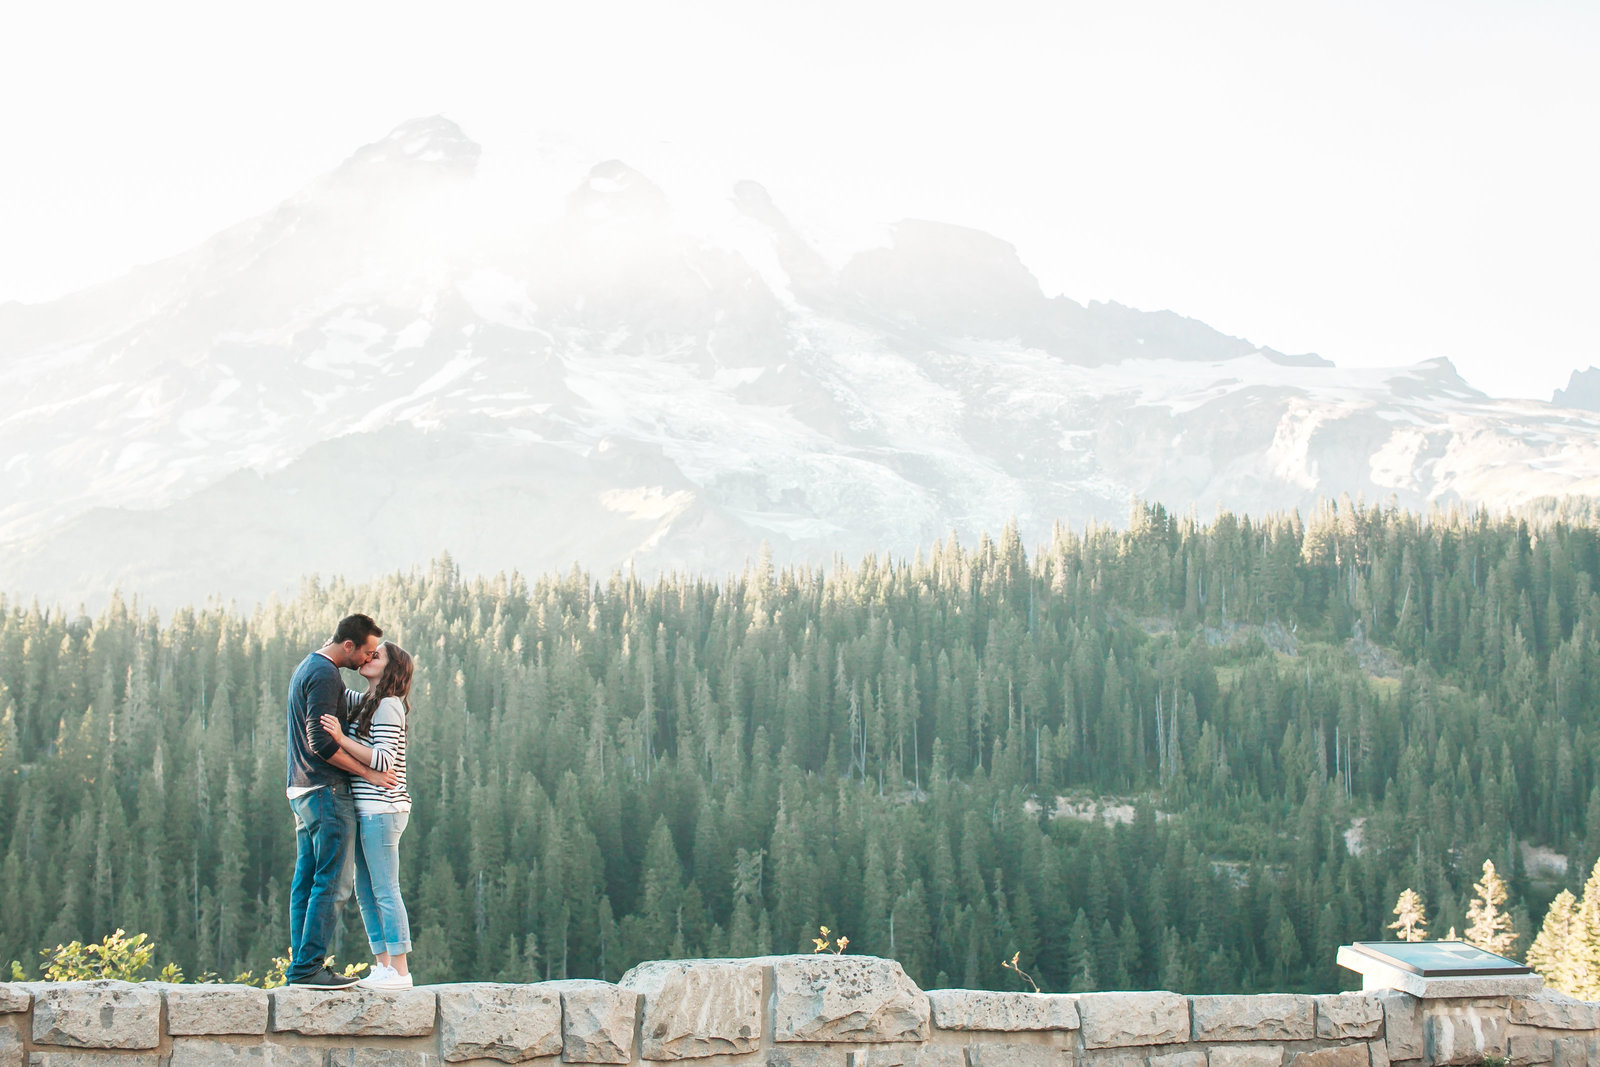 amanda-jason-engagement-photos363690